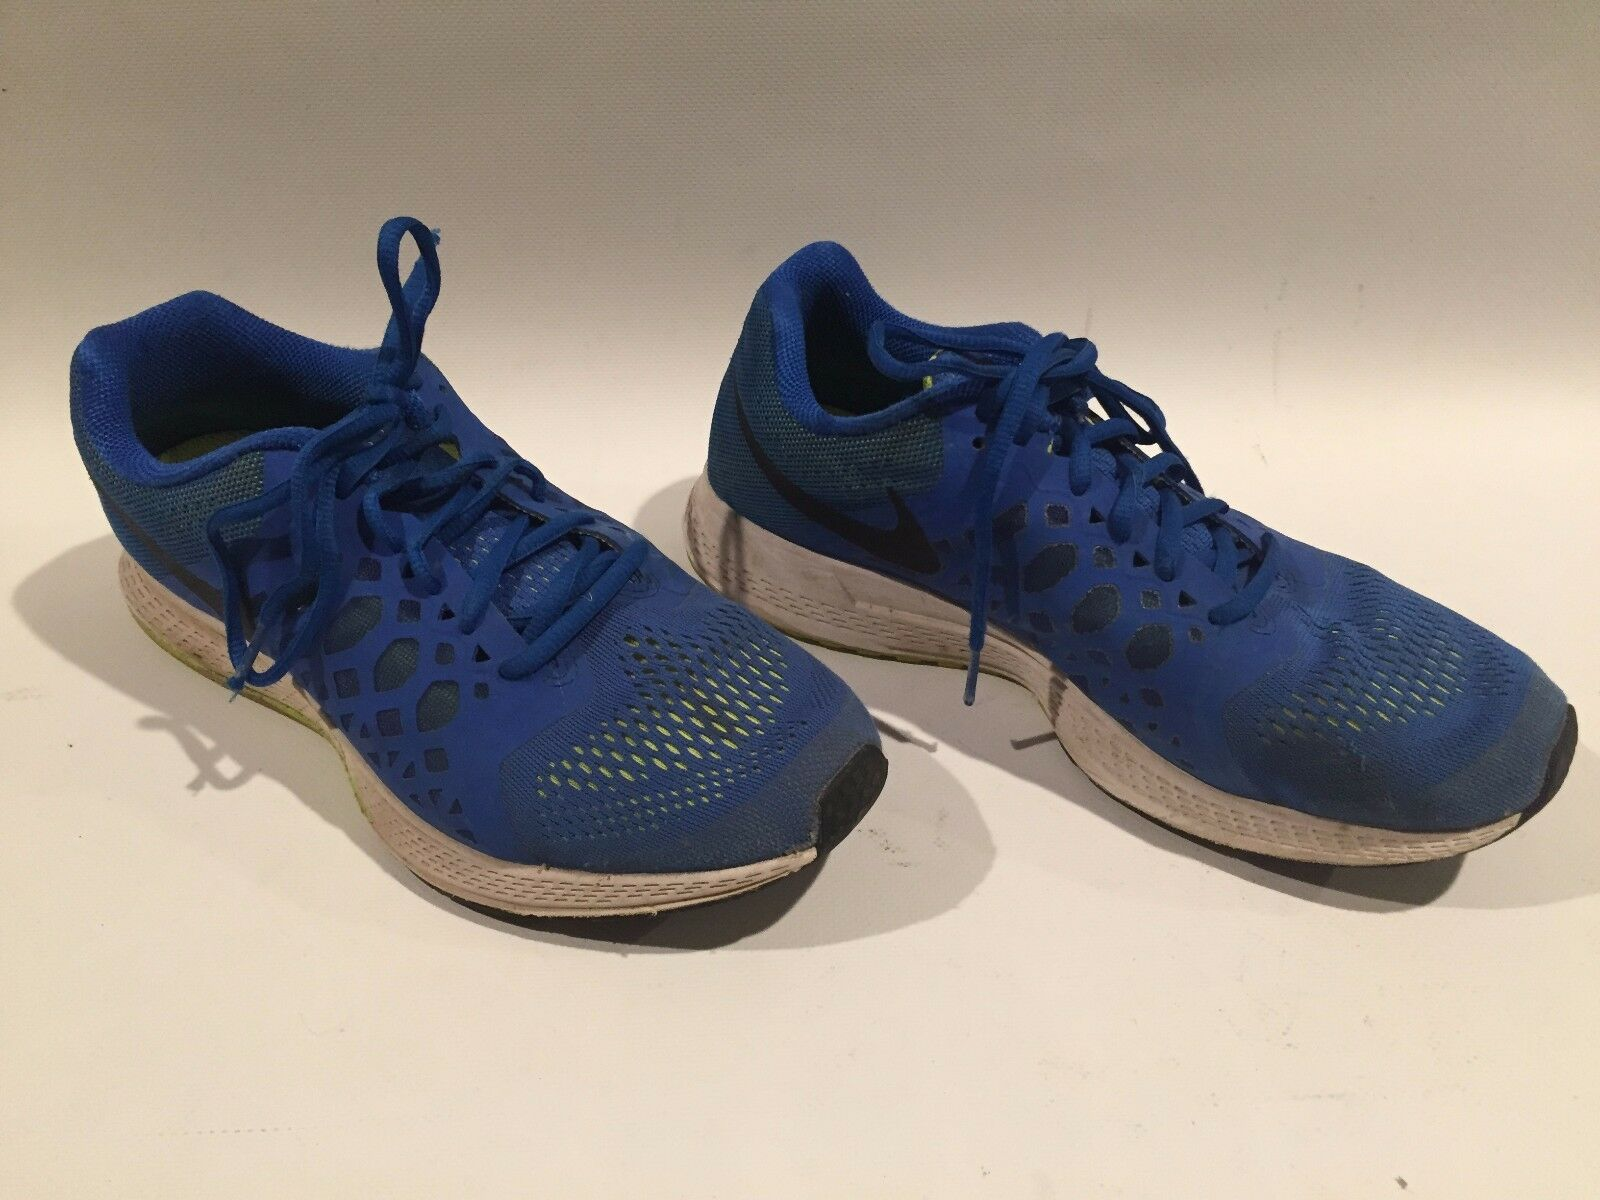 Nike Zoom Pegasus 31 Blue/Yellow Running Athletic Shoes Comfortable